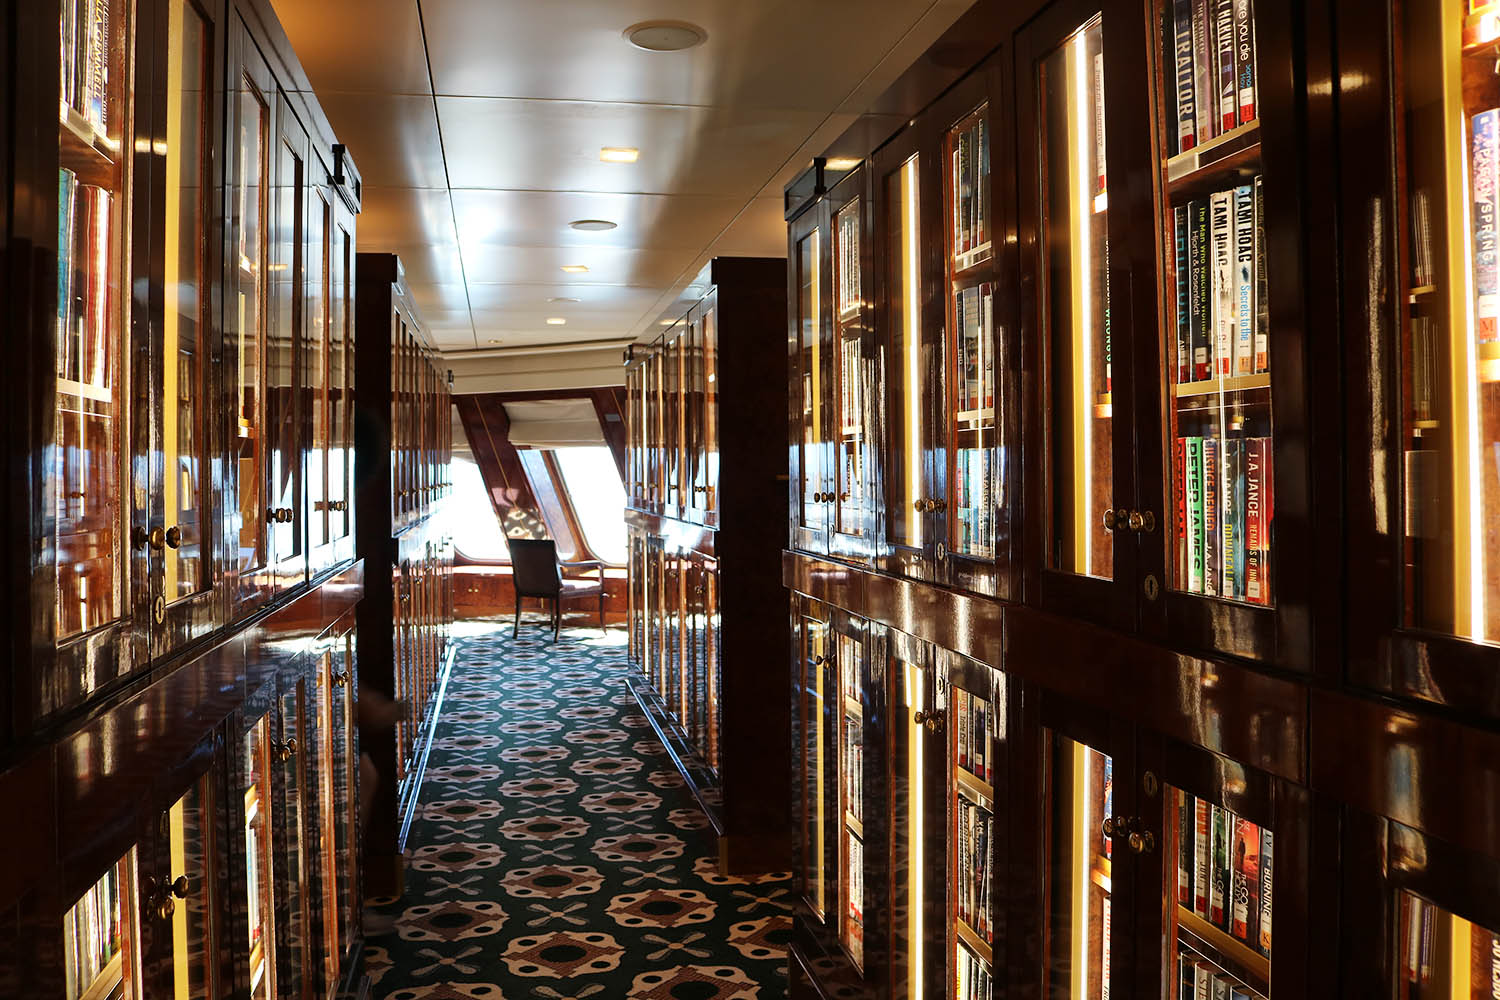 video stroll through queen mary 2 luxury liner with me 9lives